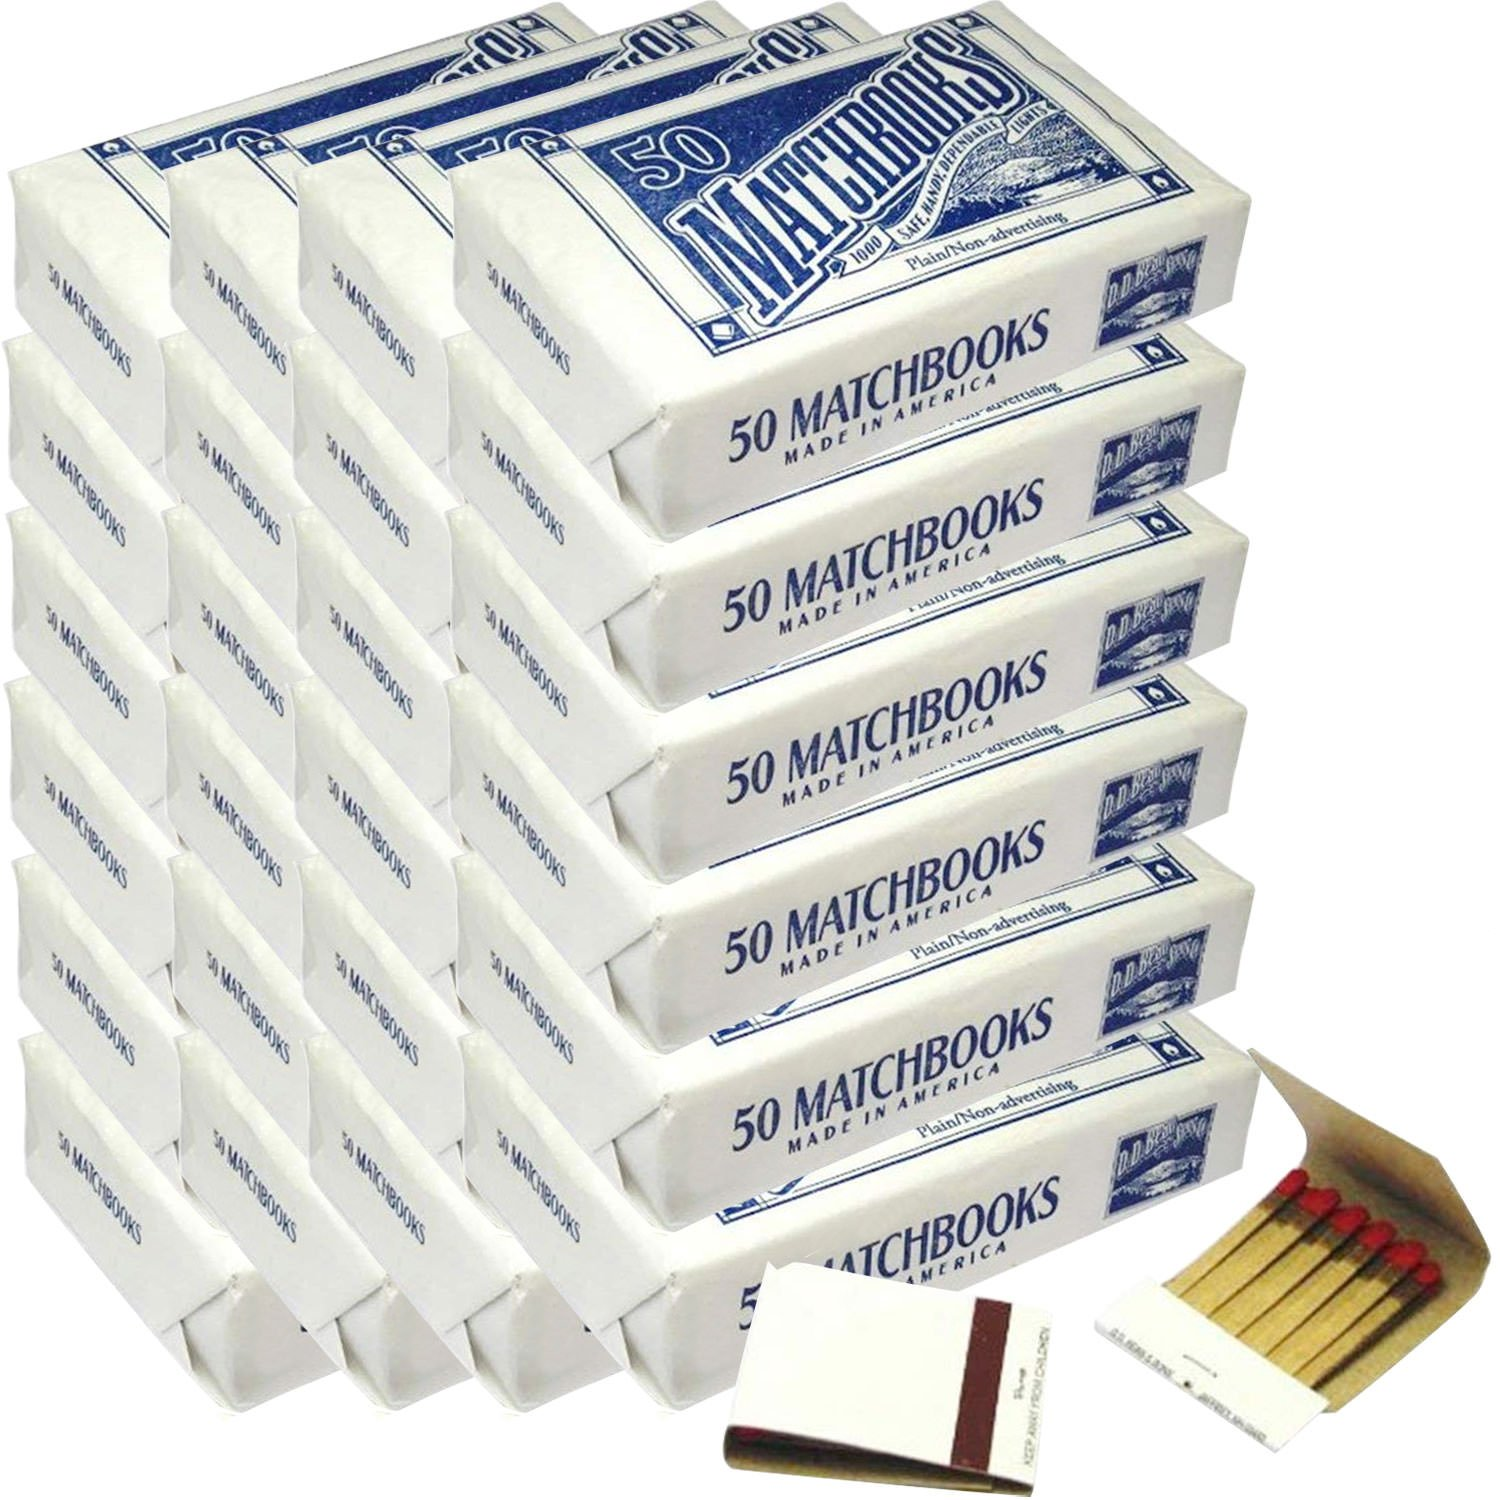 24 Boxes - Plain White Matches Matchbooks for Wedding Birthday Wholesale Made in America (1200 Matchbook Total)